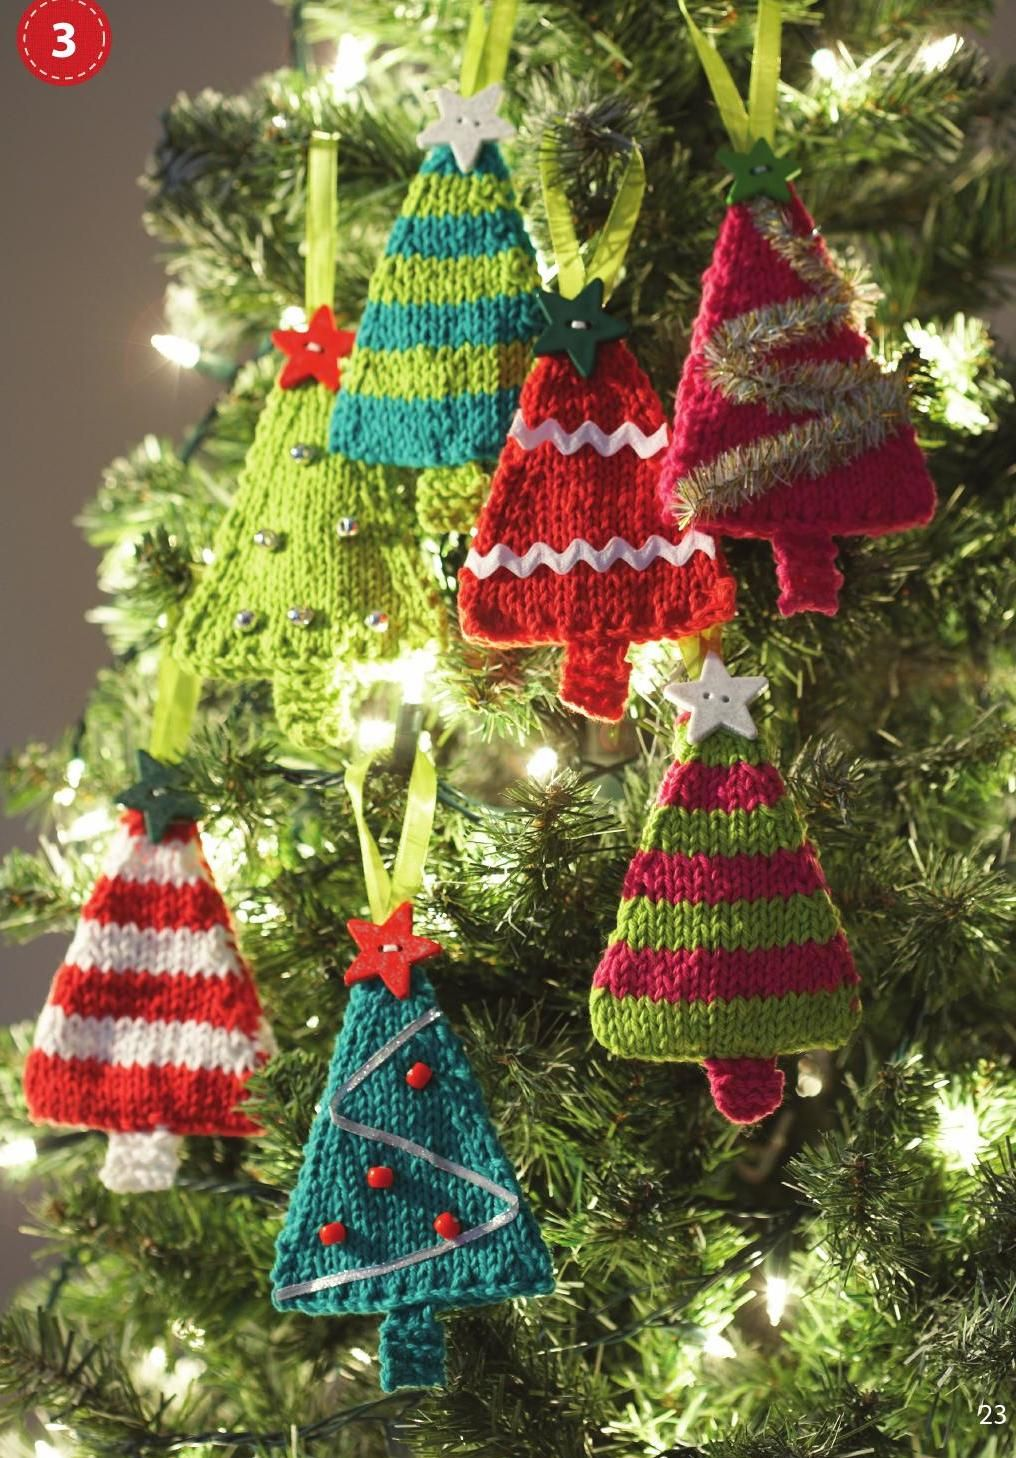 Yarnspirations 2014 Christmas Decor Lookbook | Pinterest | Christmas ...